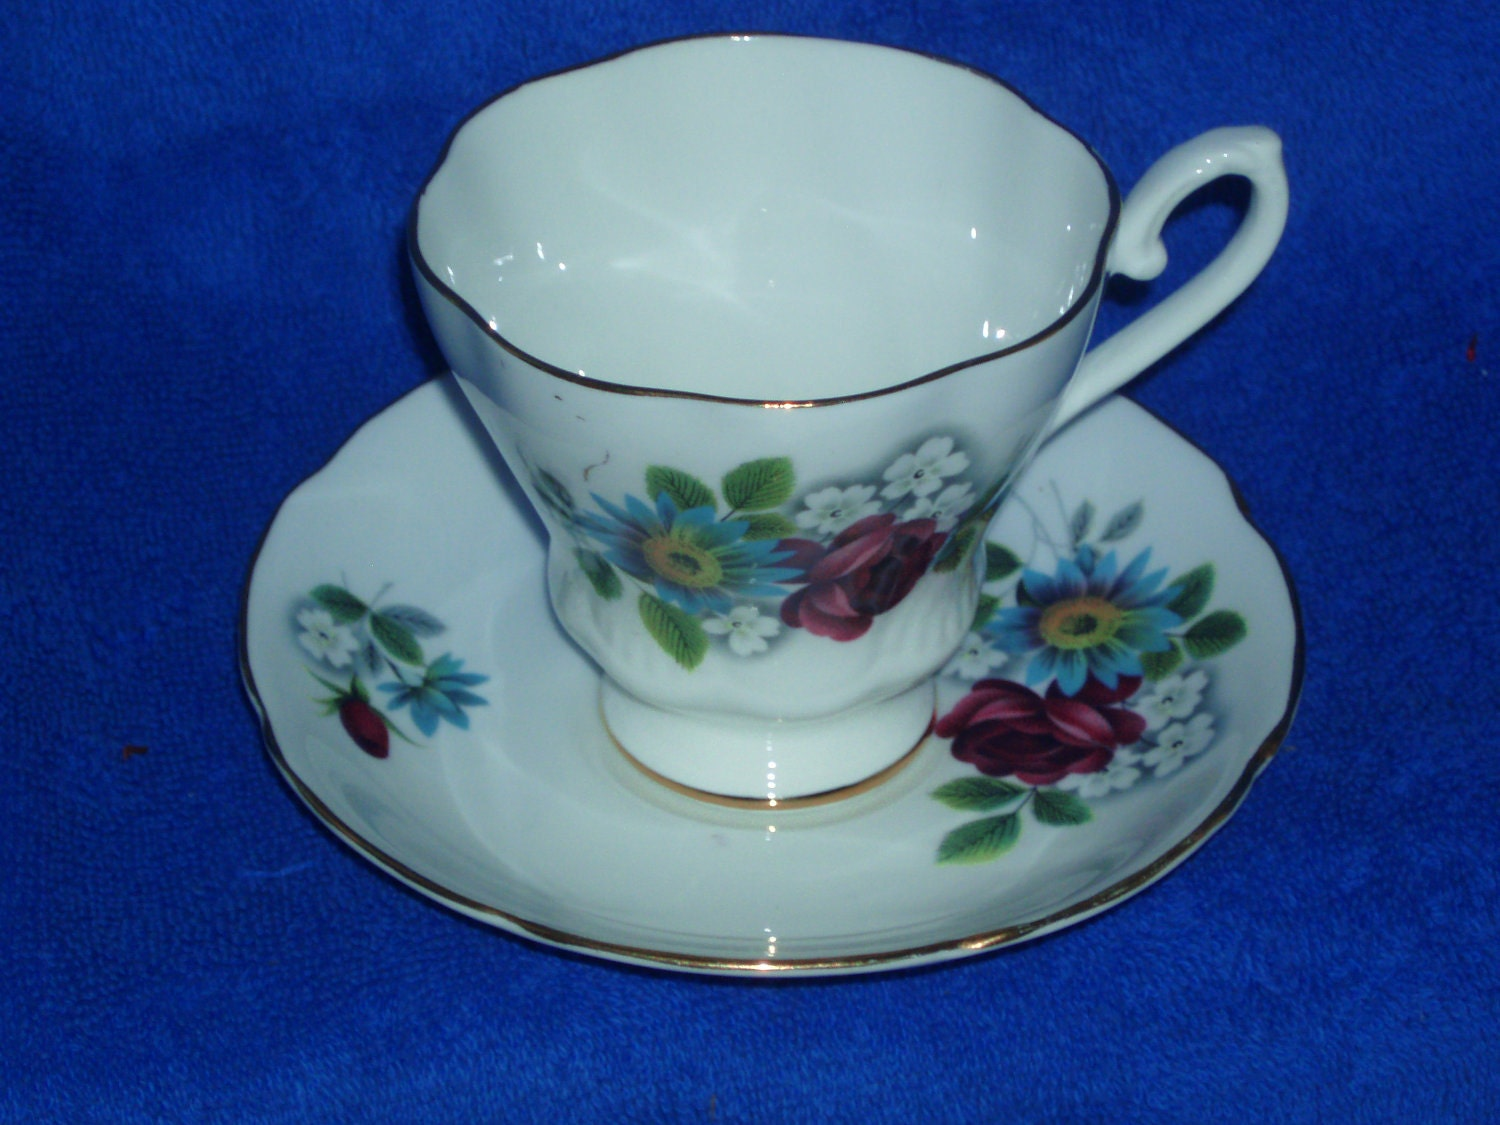 Vintage Royal Grafton Fine Bone China Cup and Saucer Made in